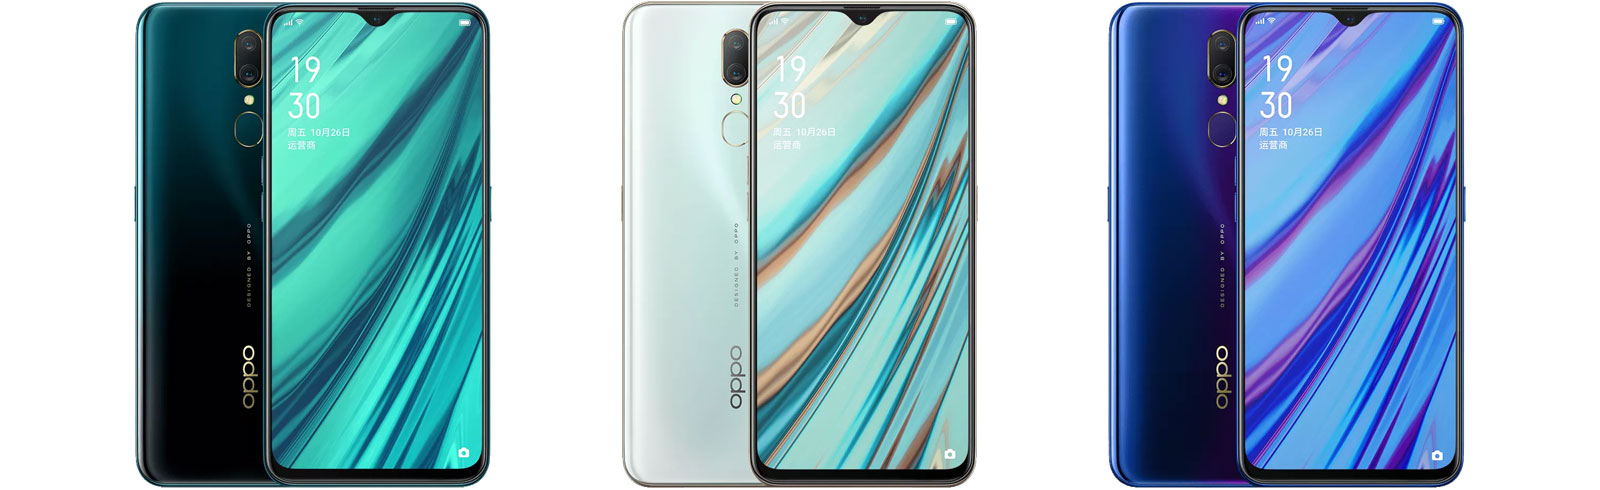 Oppo A9 reservations are open online, sales scheduled for April 30th